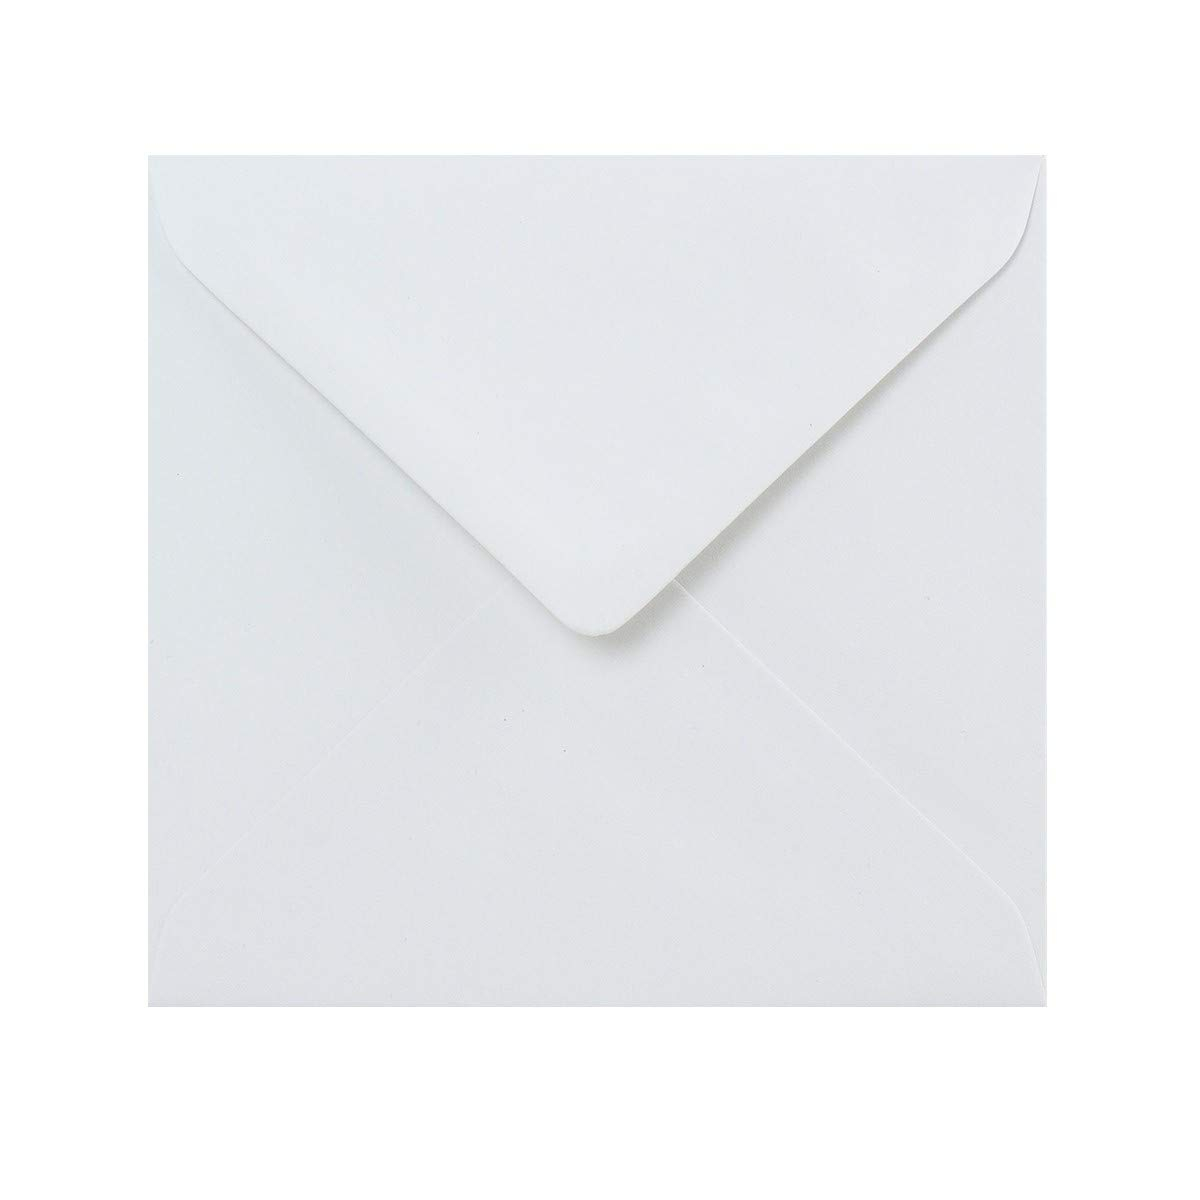 5 x 5 White Envelopes by Cranberry 130mm x 130mm Pack of 50